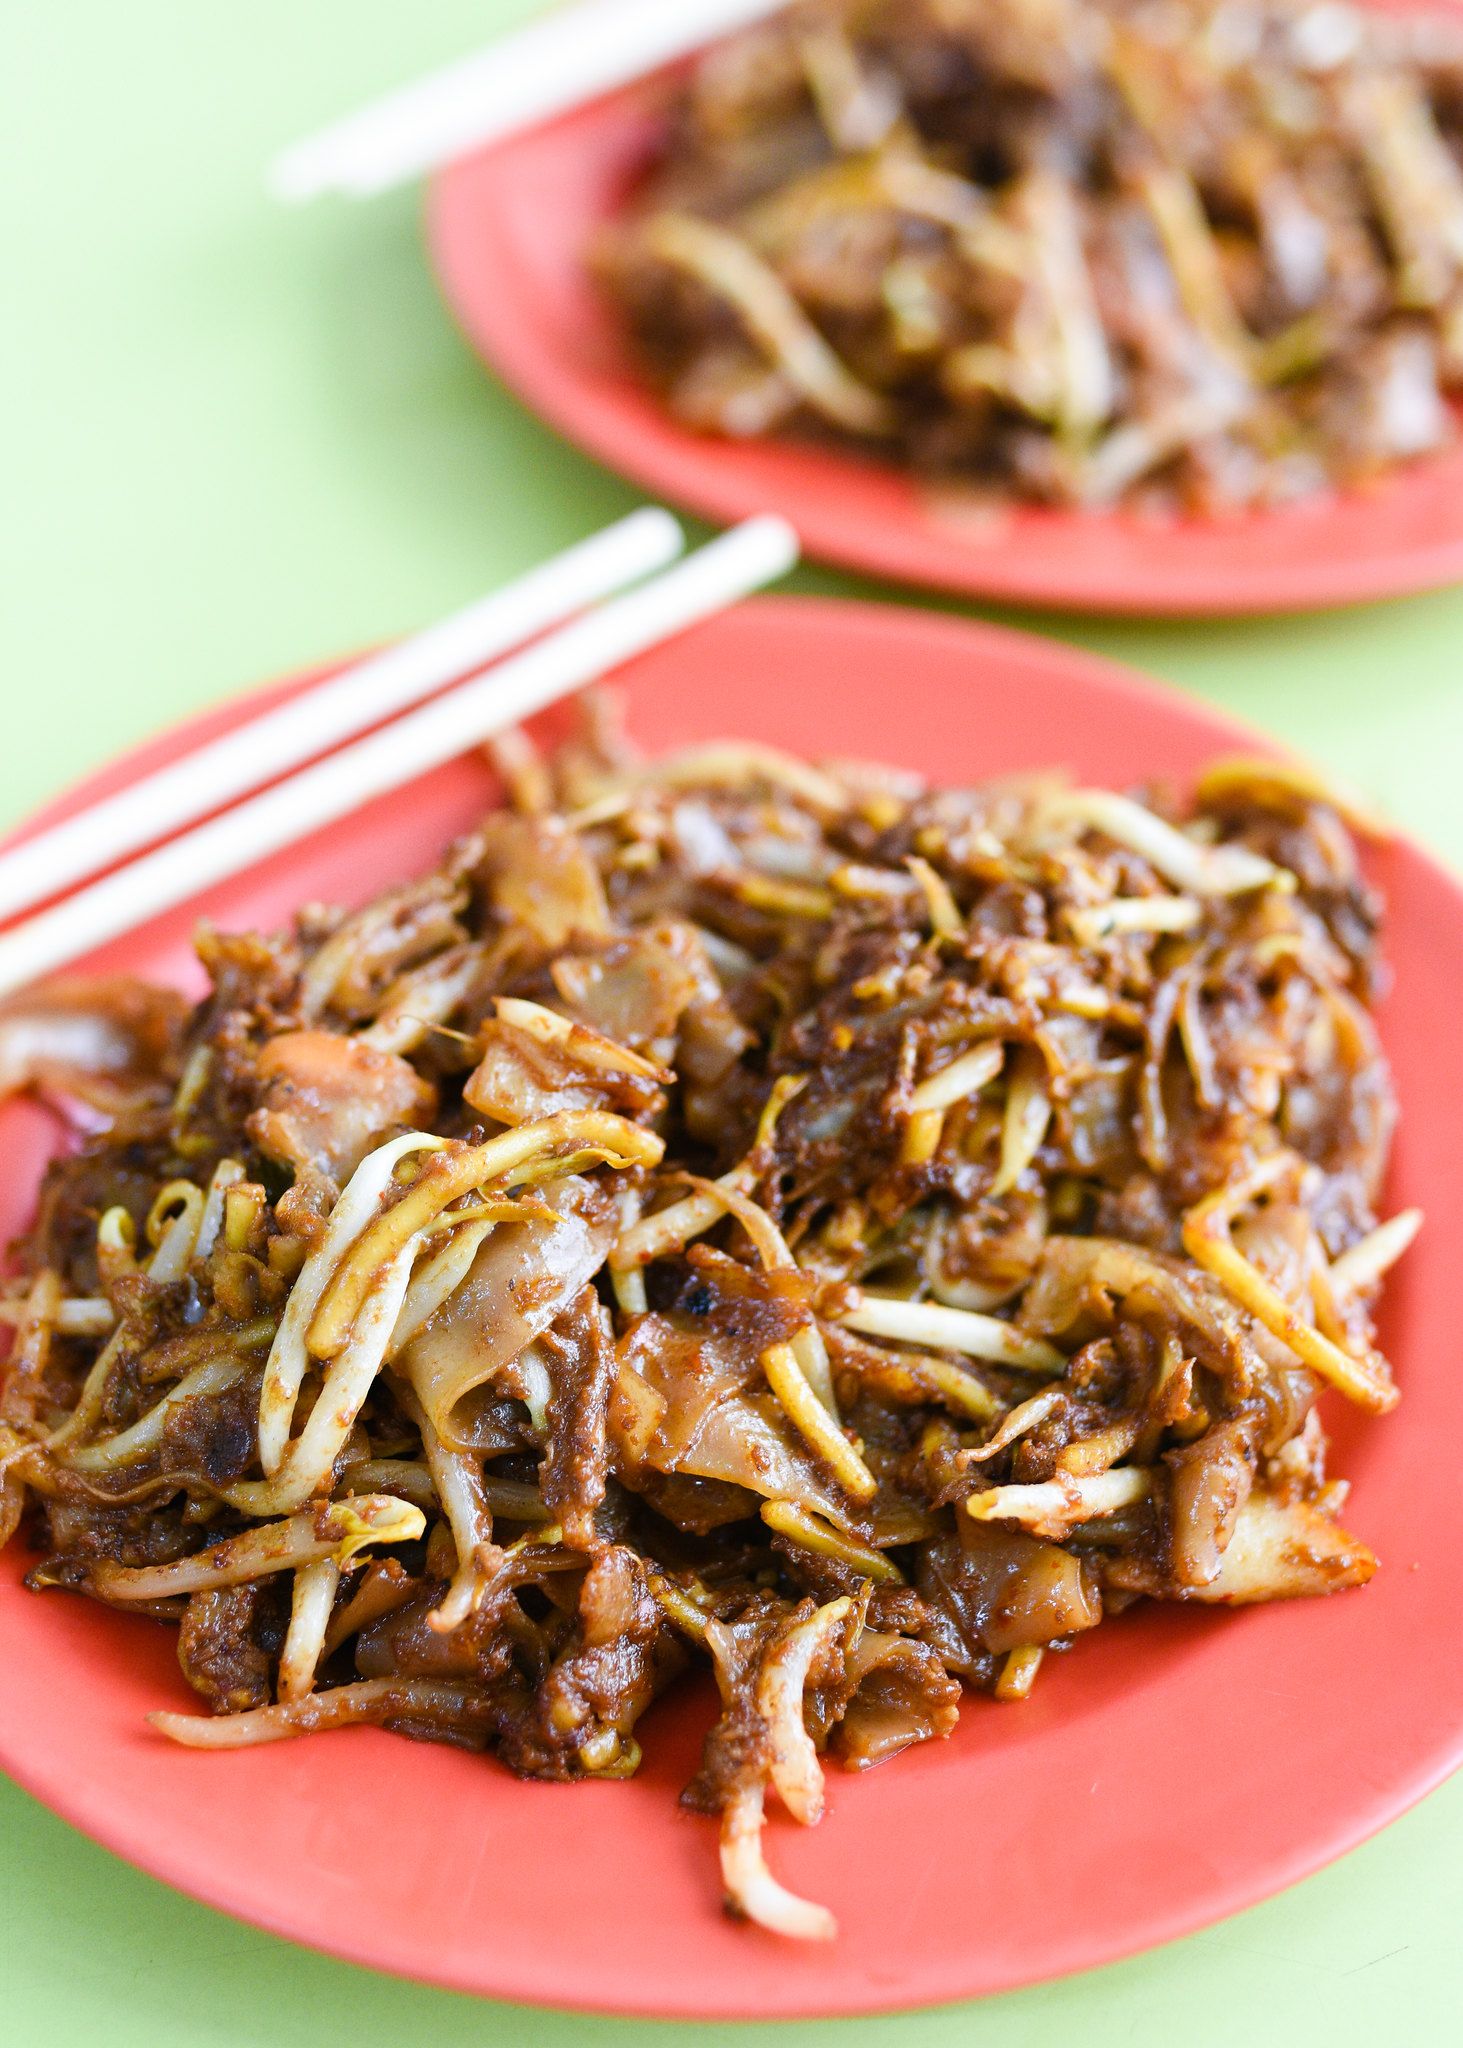 Outram Park Fried Kway Teow Mee DSC_-1